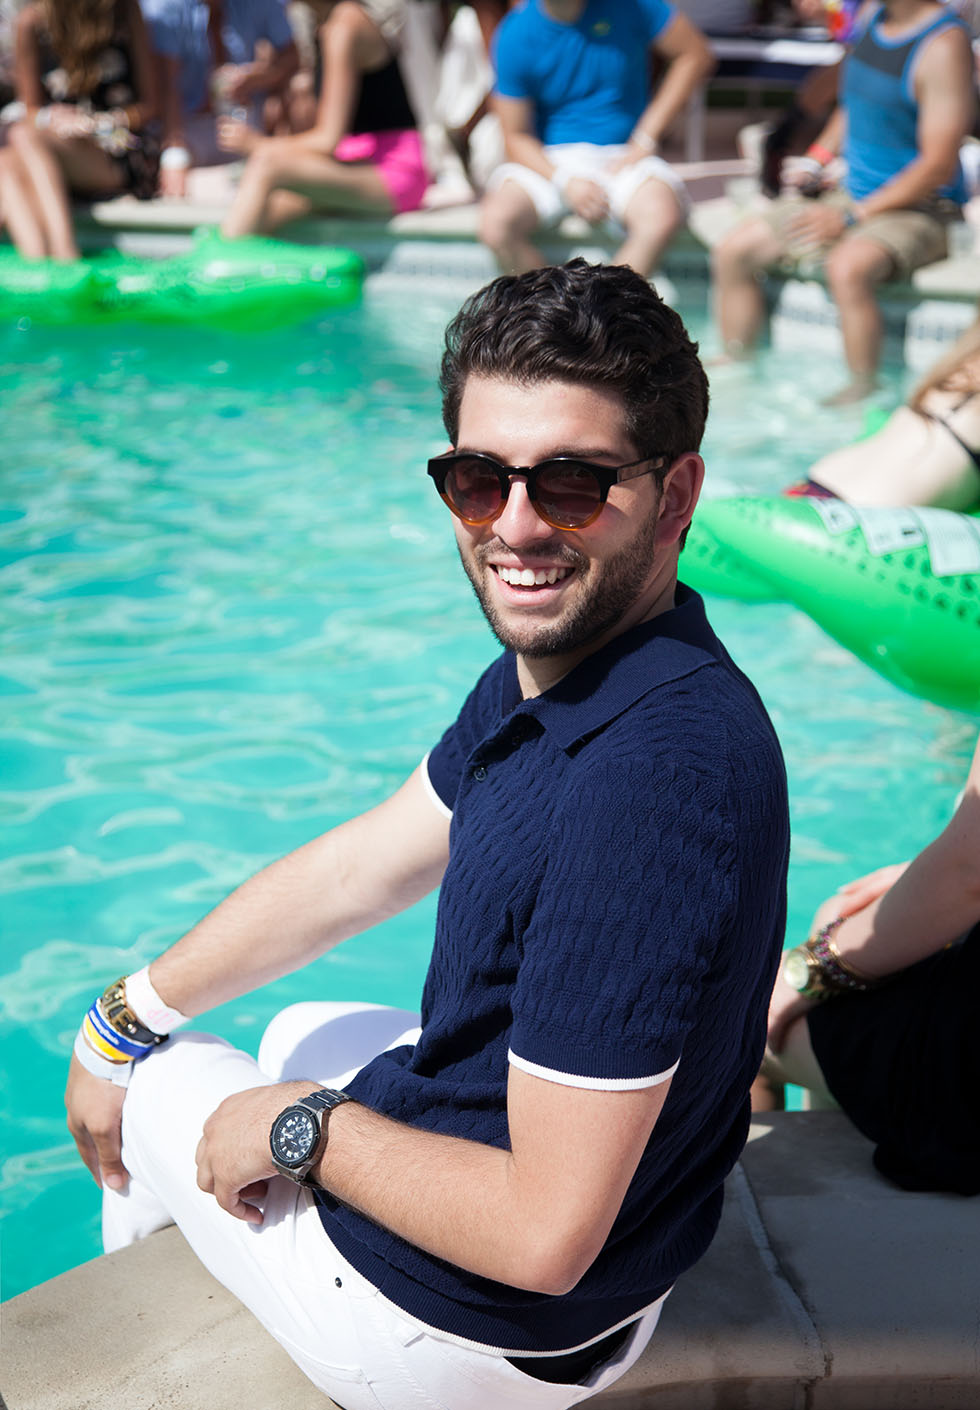 Avoiding heatstroke at the Lacoste L!VE desert pool party.